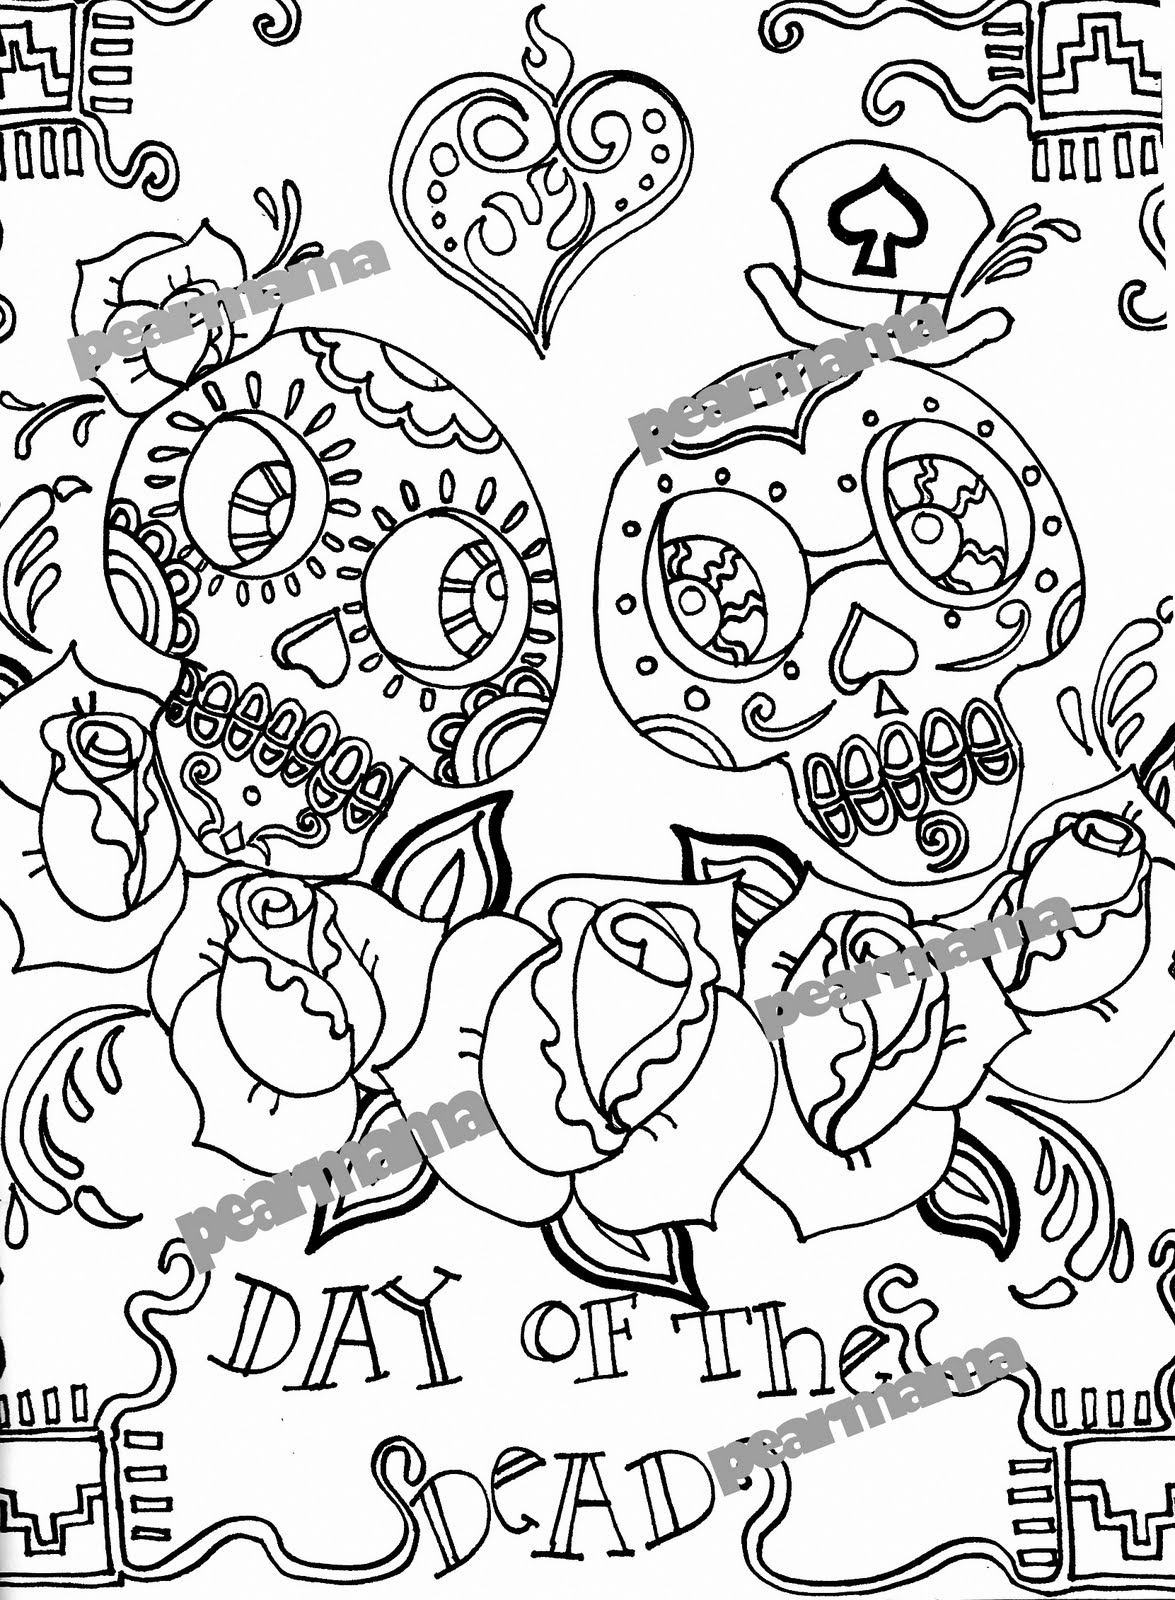 day of the dead coloring sheets free printable day of the dead coloring pages best the day dead coloring sheets of